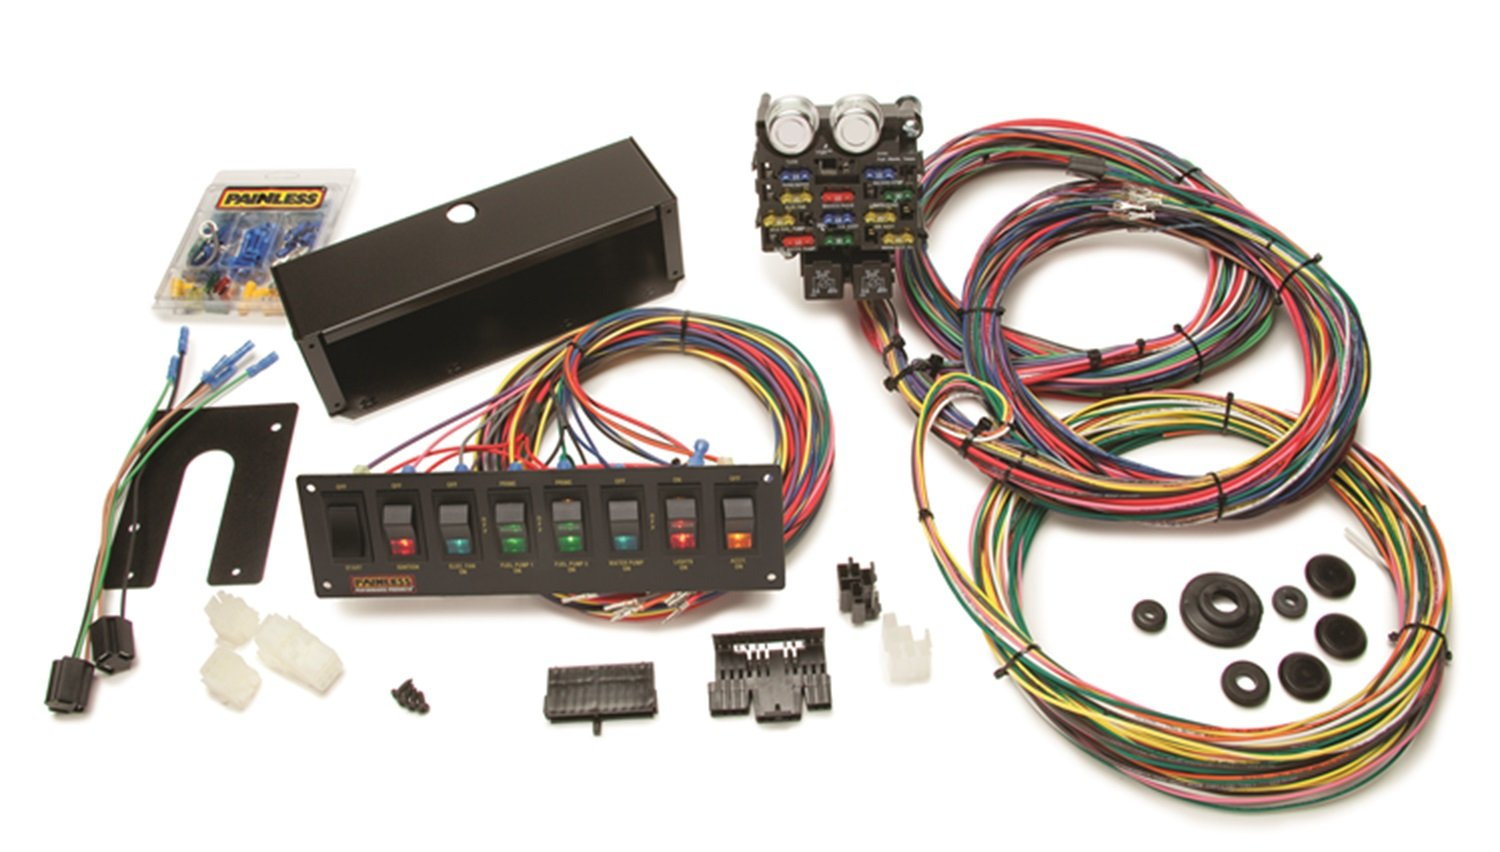 Painless 50003 Pro Street Chassis Harness with Switch Panels (21 Circuits) by Painless (Image #1)